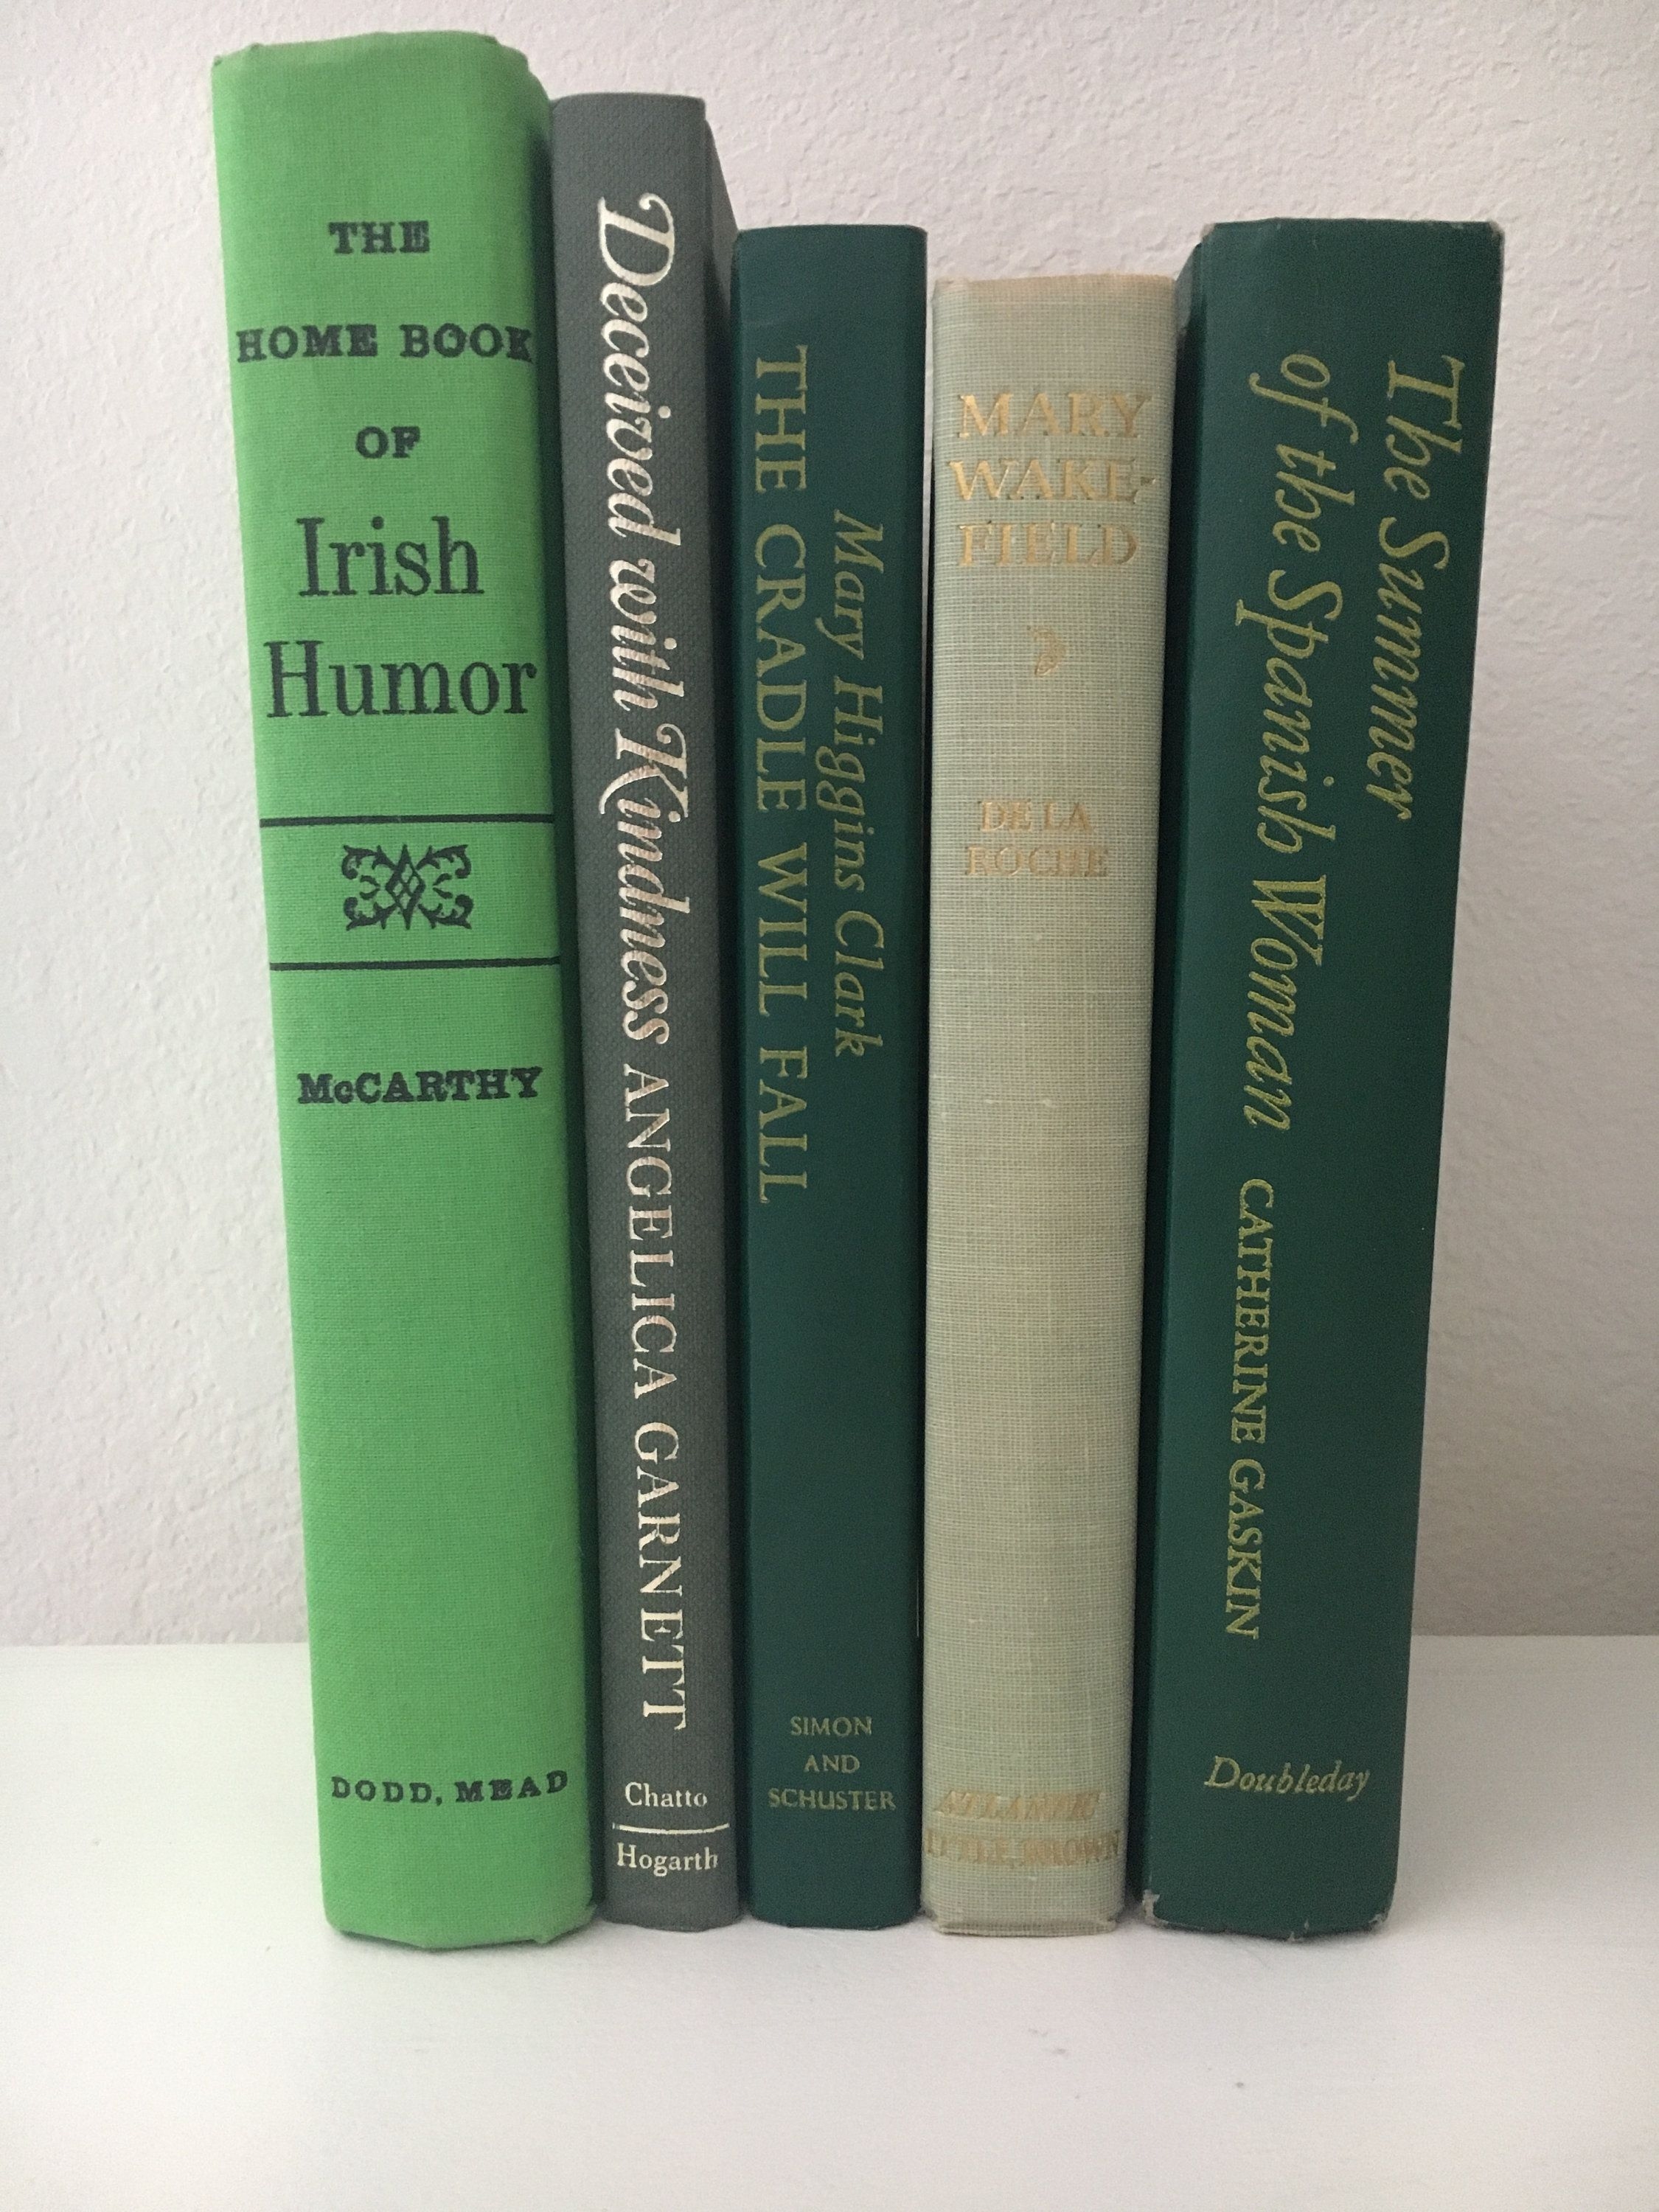 Stack Of Books Vintage Books For Shelf Decor Collectible Books Five Books Table Decor Shades Of Green Books 1949 1984 Book Decor Vintage Books Green Books